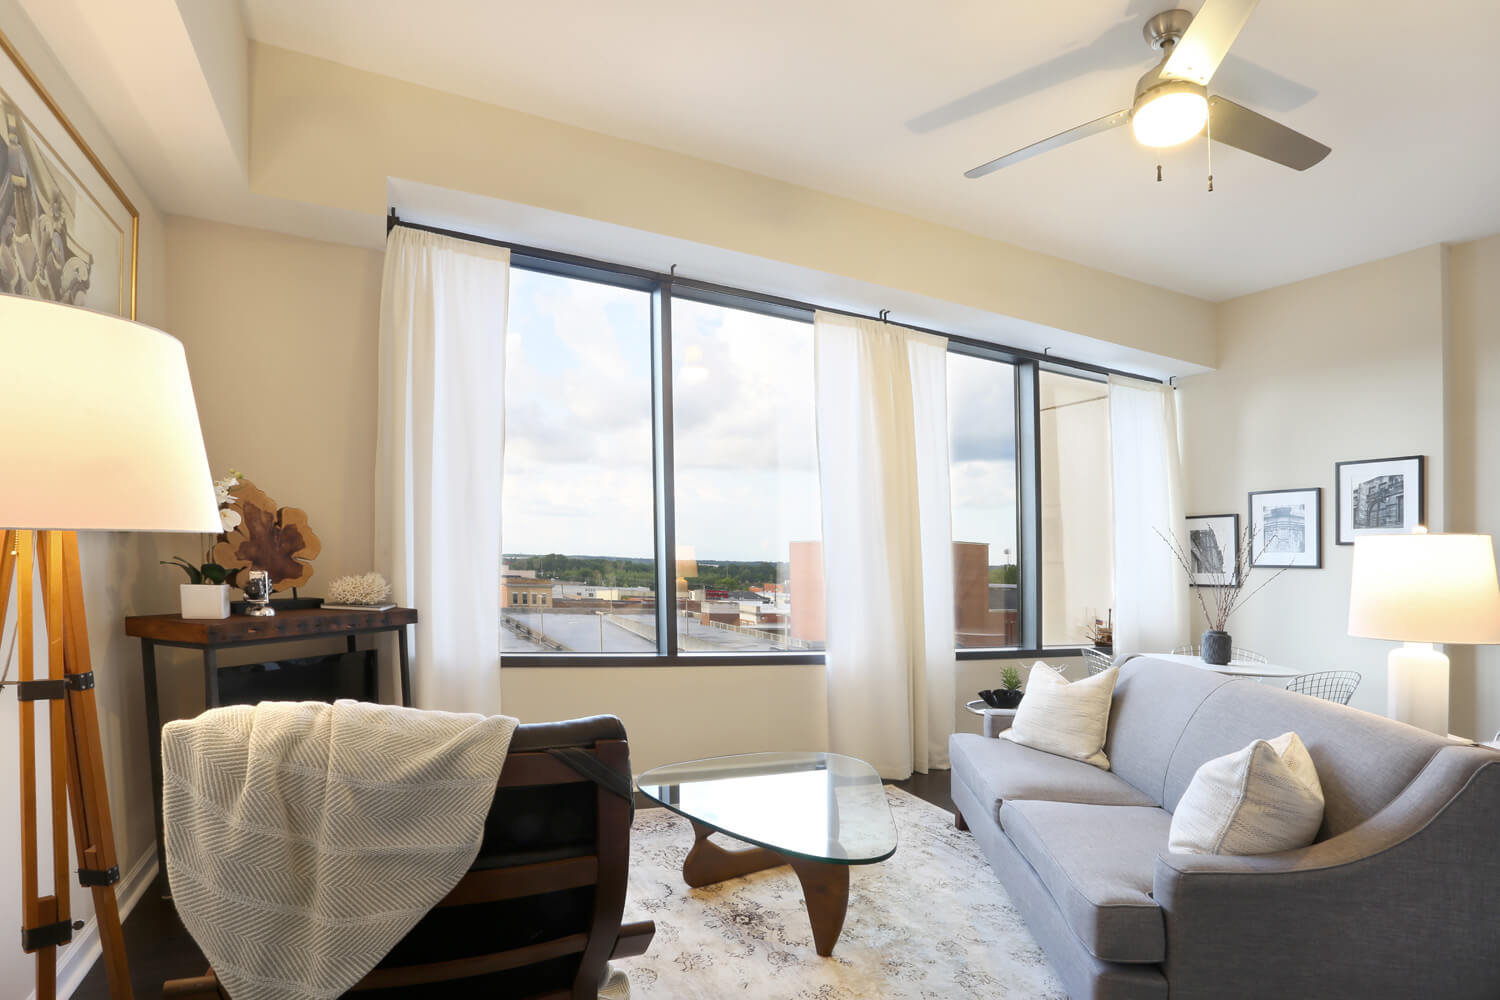 The 40 Four Building Designed by Foshee Architecture – Apartment Living Room